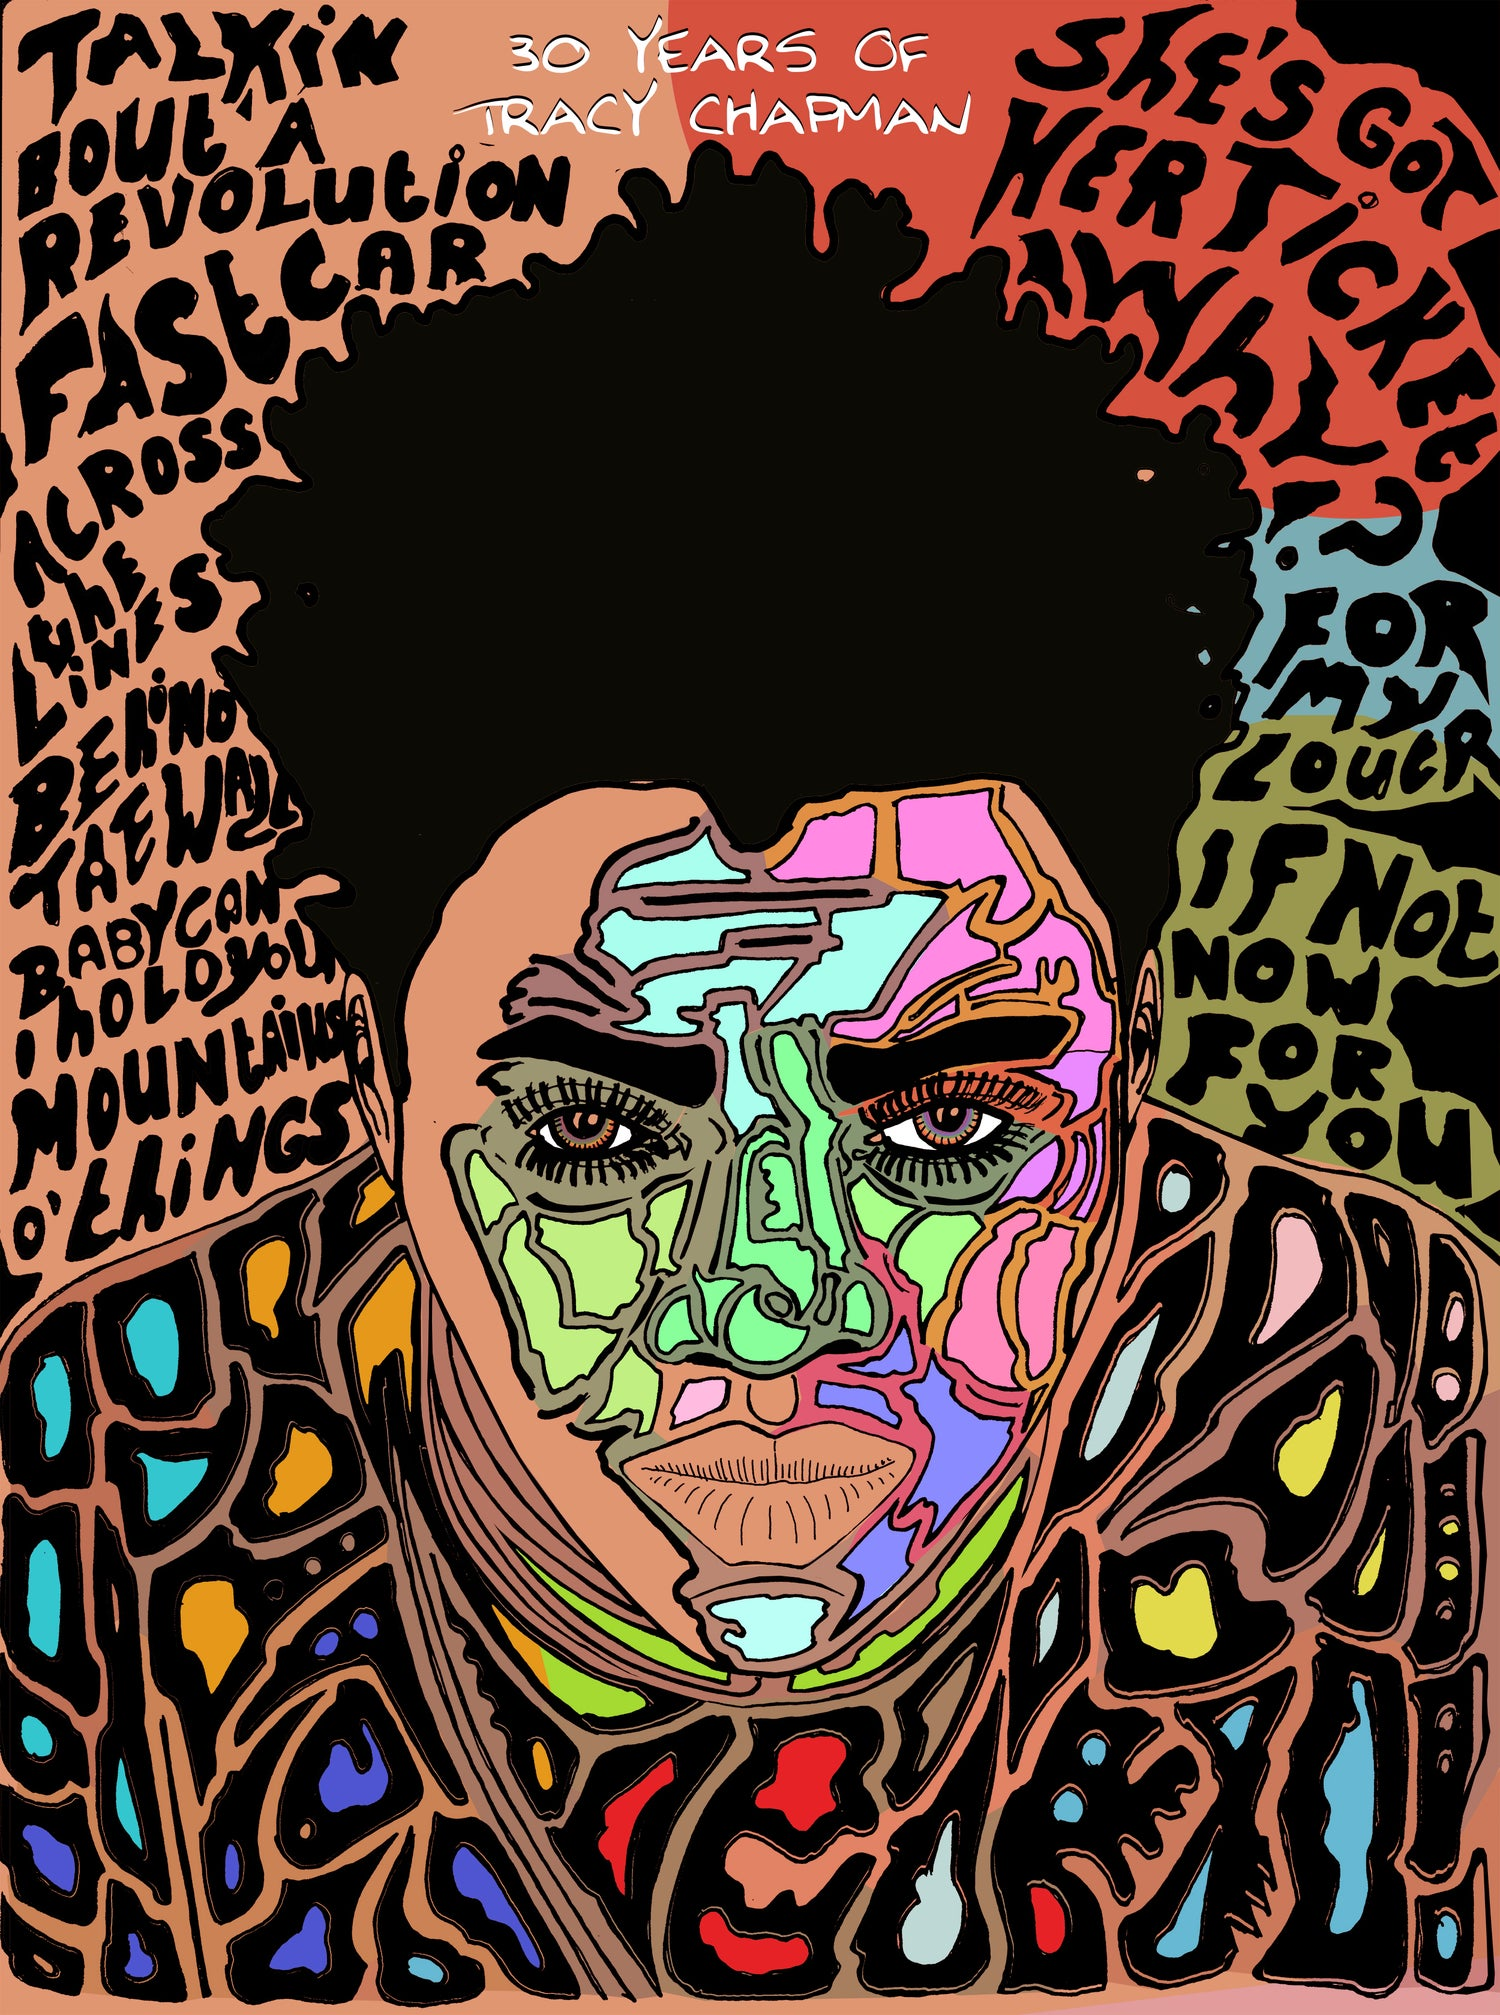 Image of Tracy Chapman 30th anniversary piece